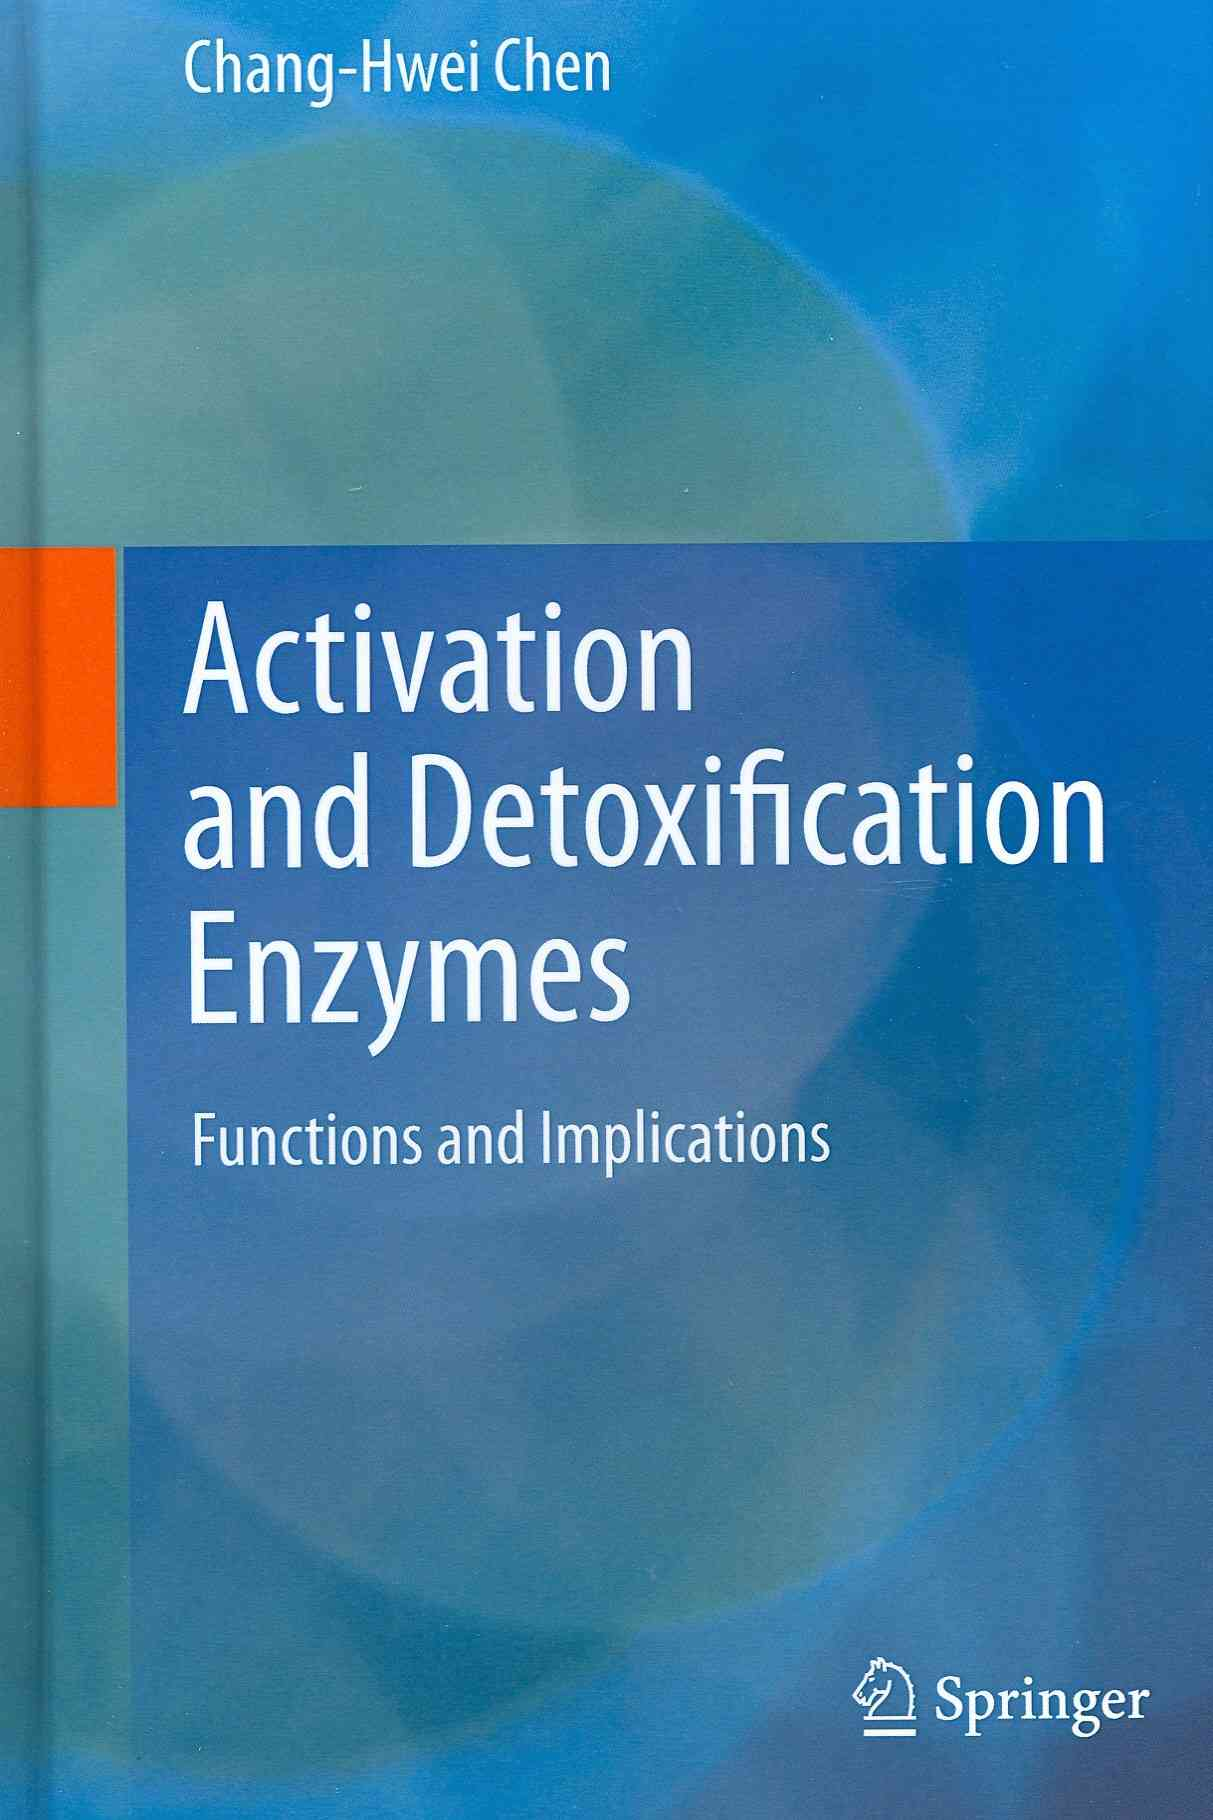 Activation and Detoxification Enzymes By Chen, Chang-hwei (EDT)